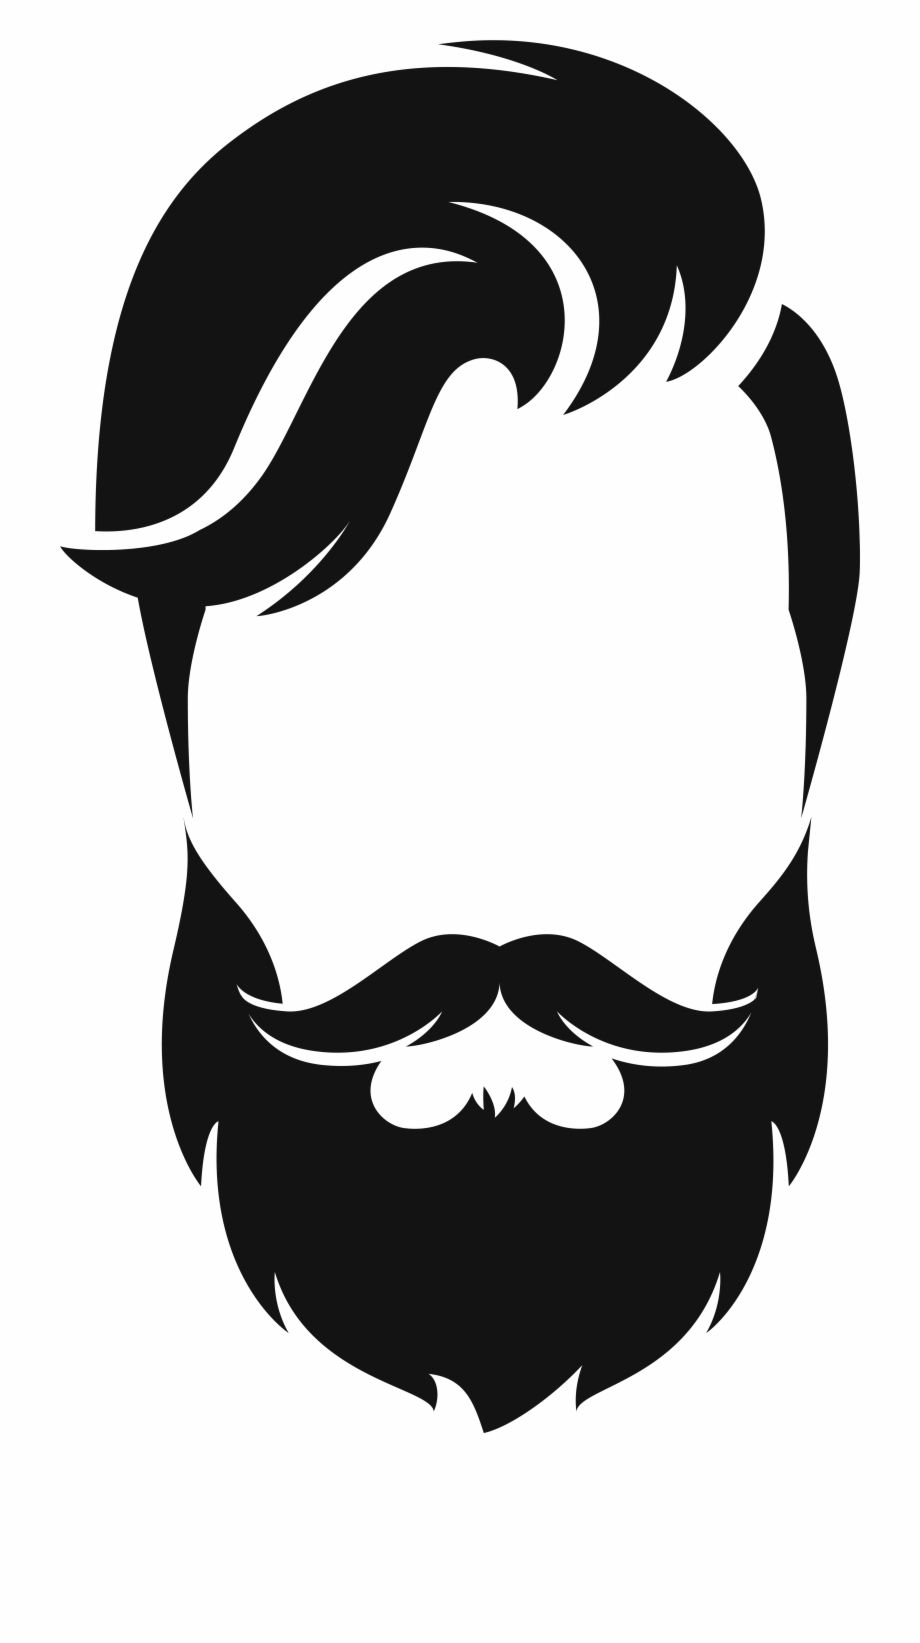 Black beard clipart graphic freeuse stock Beard Silhouette Png - Beard Png Clipart, Transparent Png Download ... graphic freeuse stock